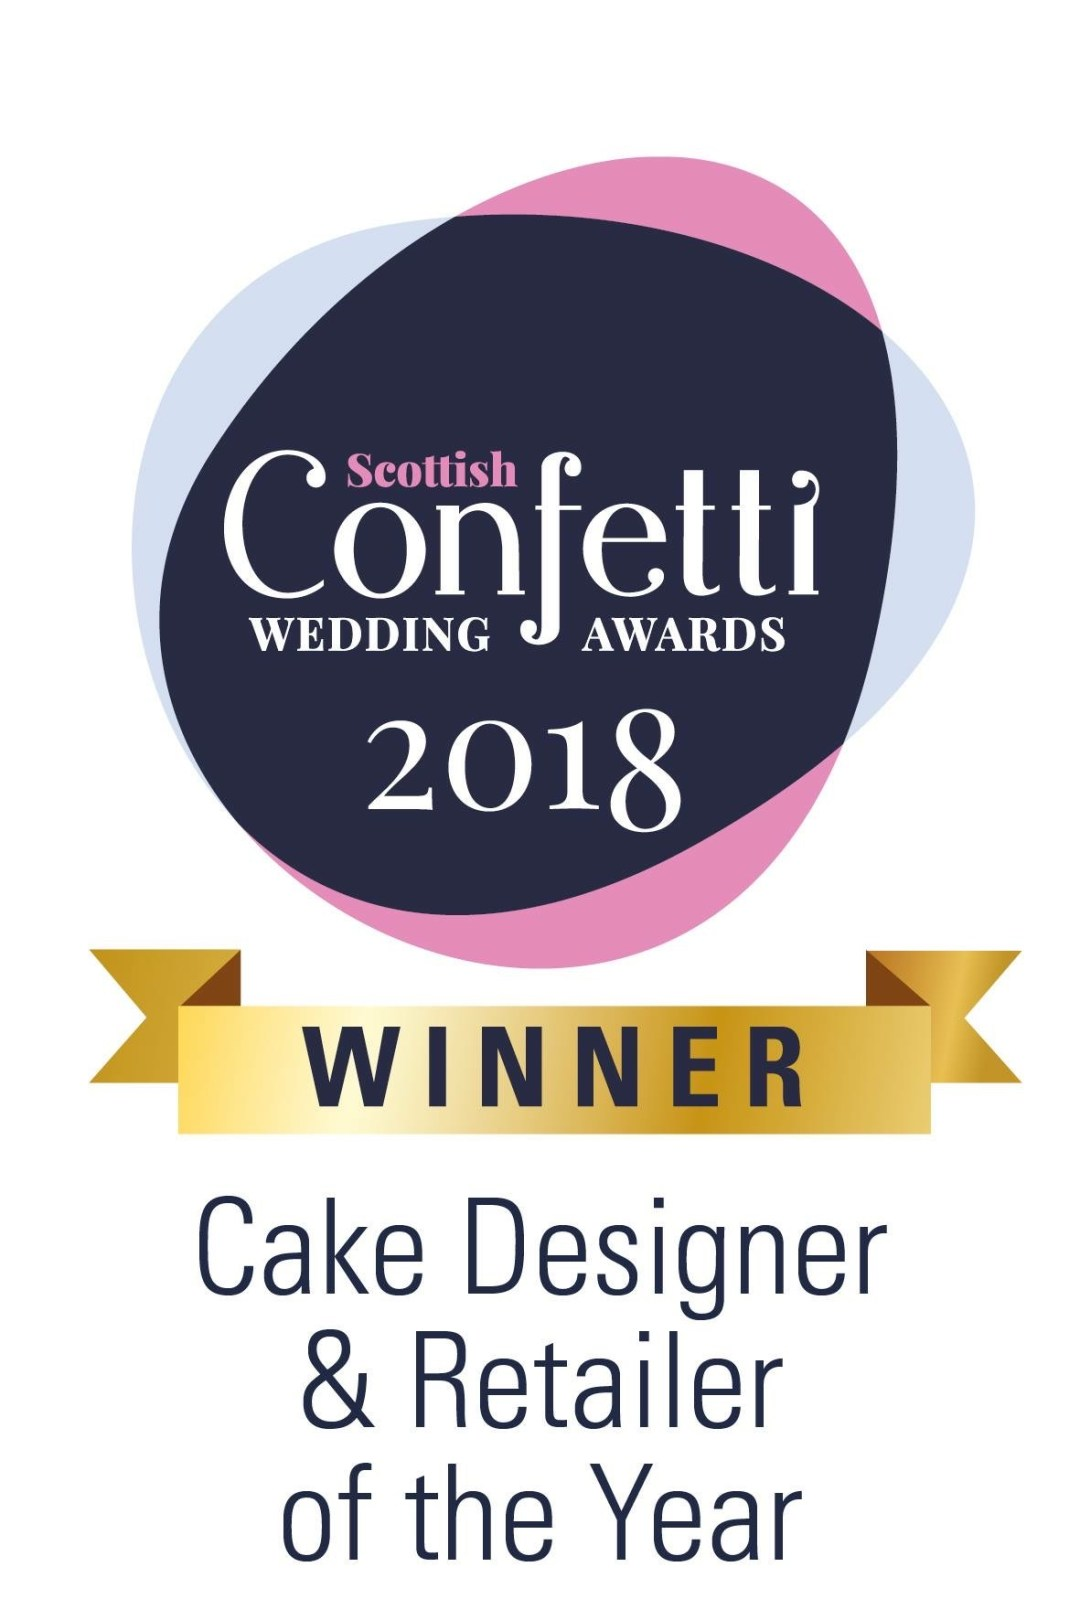 Wedding Cake Designer of the Year - Confetti Awards